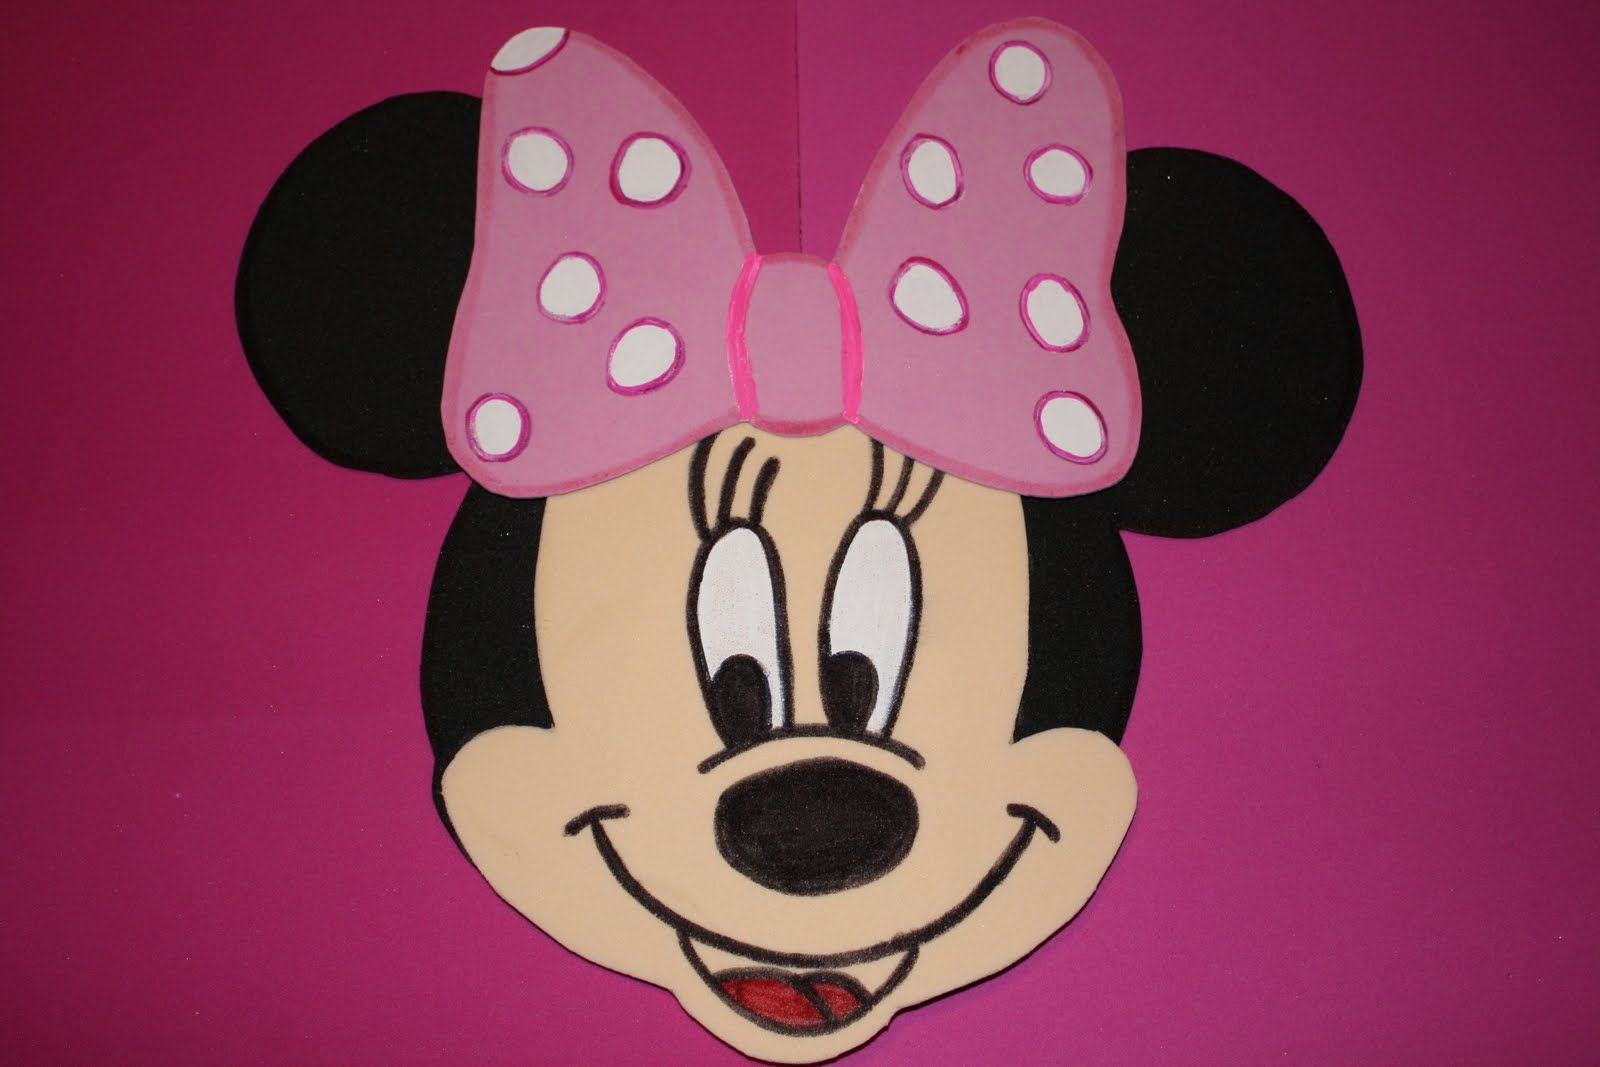 image about Minnie Mouse Face Template Printable identified as free of charge minnie mouse printables Cost-free Obtain Minnie Mouse